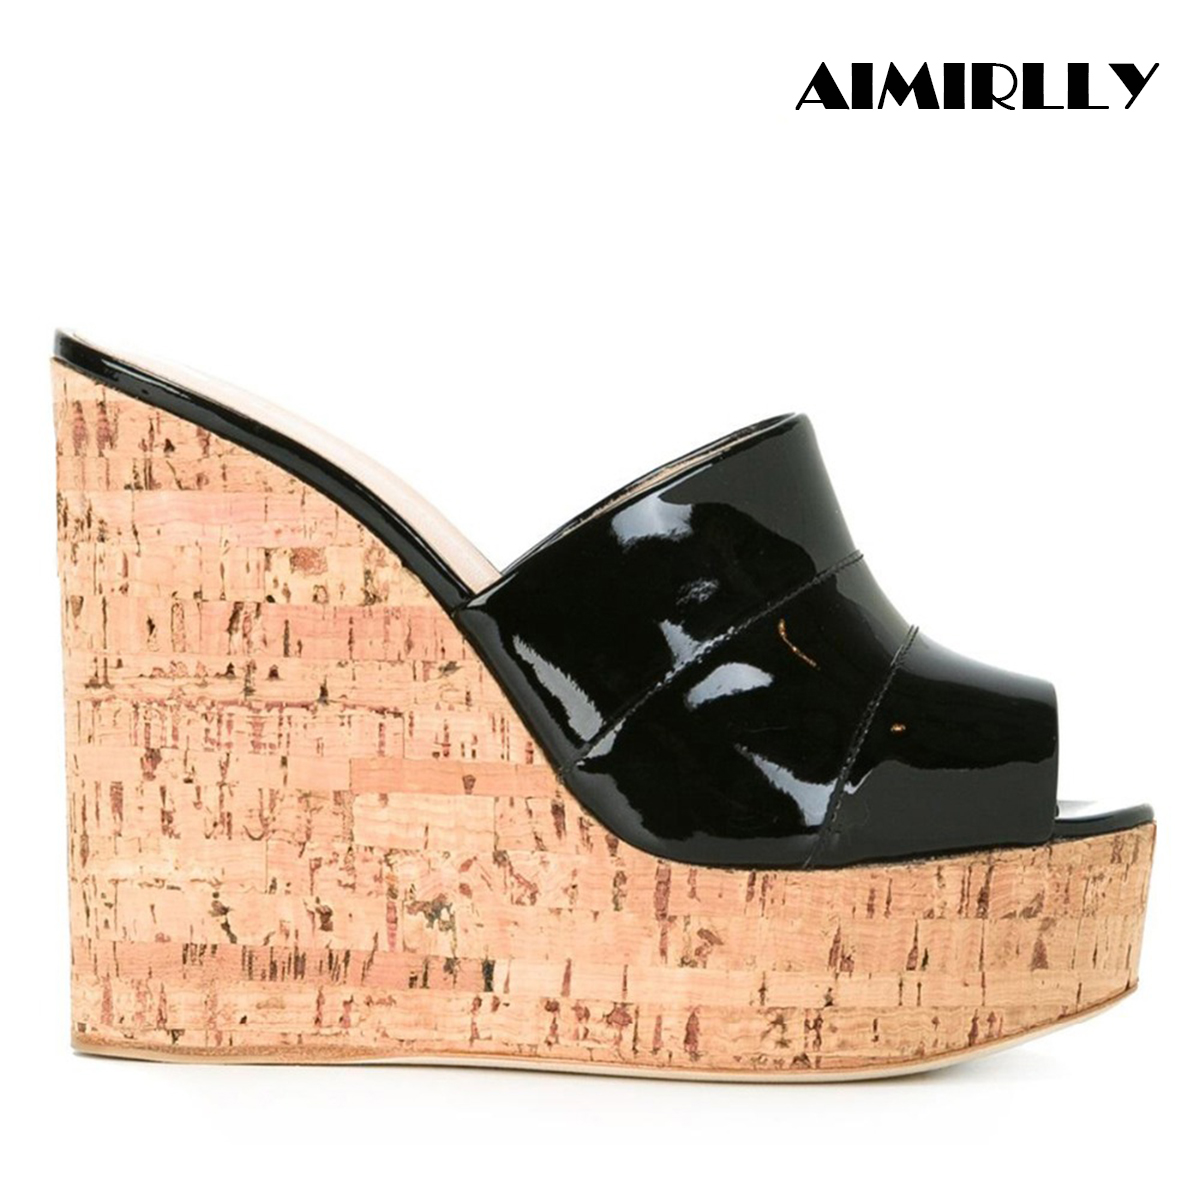 Aimirlly Women Shoes Slide-Sandals Mules Cork Wedge Slip-On High-Heel Black Silver Summer